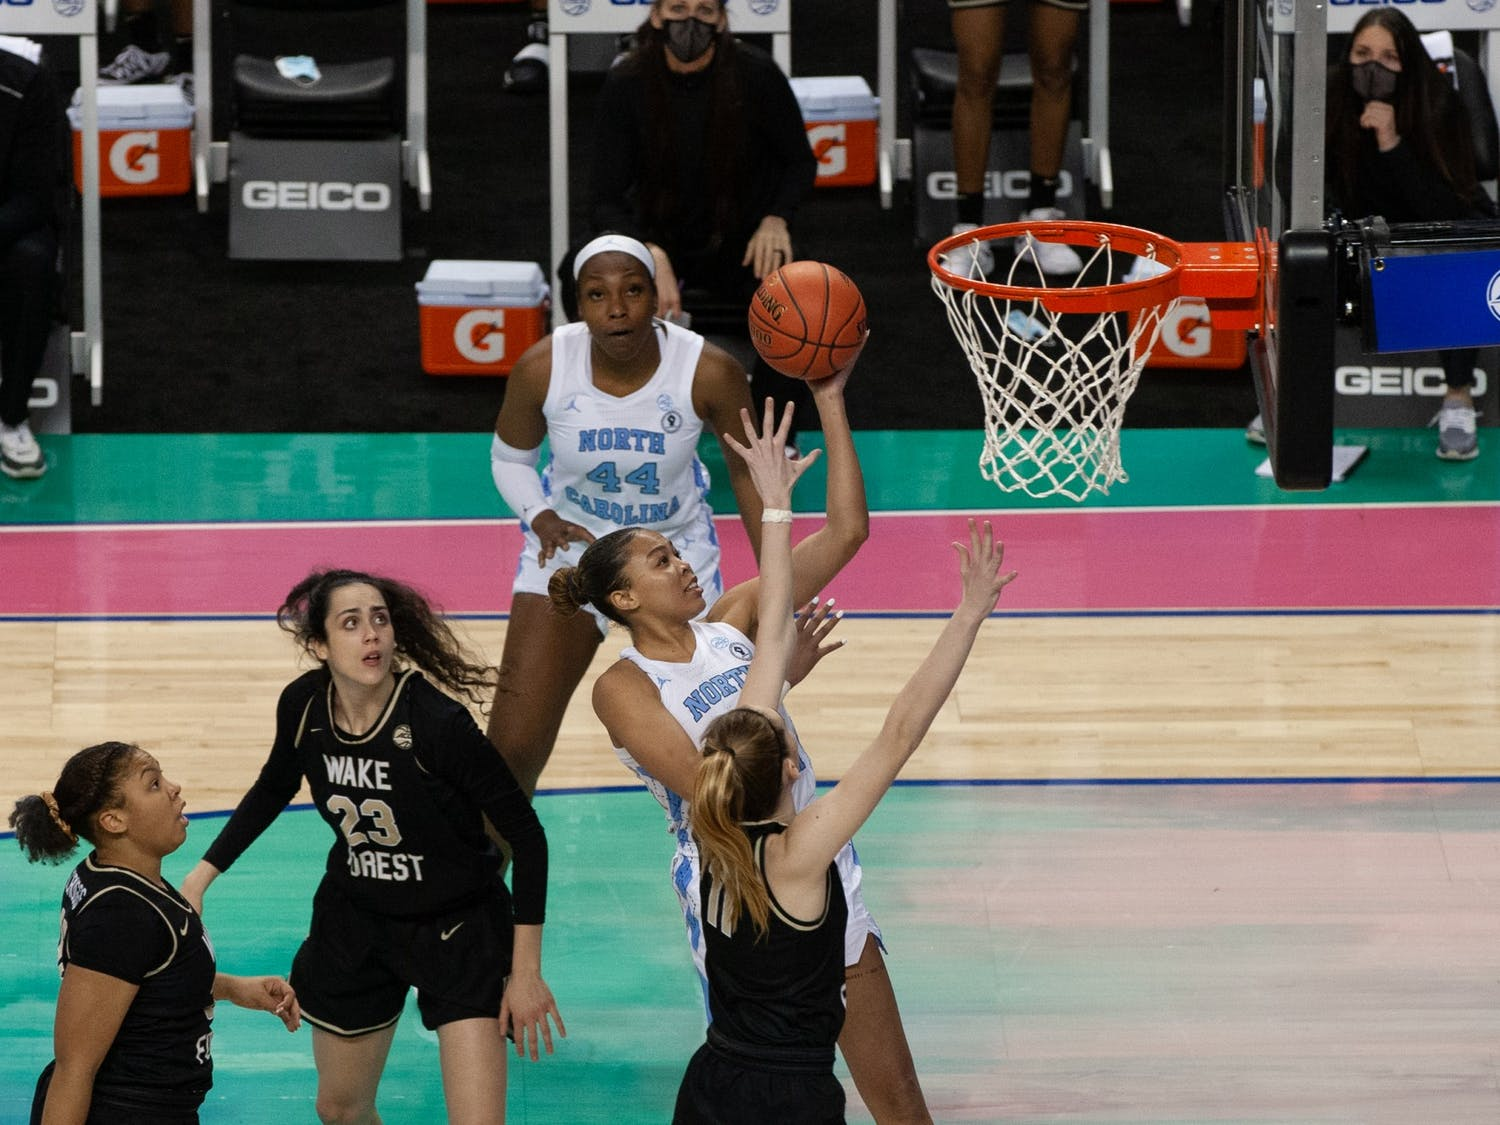 UNC graduate guard Stephanie Watts attempts a layup in Carolina's 81-71 second-round ACC tournament loss to Wake Forest University at Greensboro Coliseum on Mar. 4, 2021.